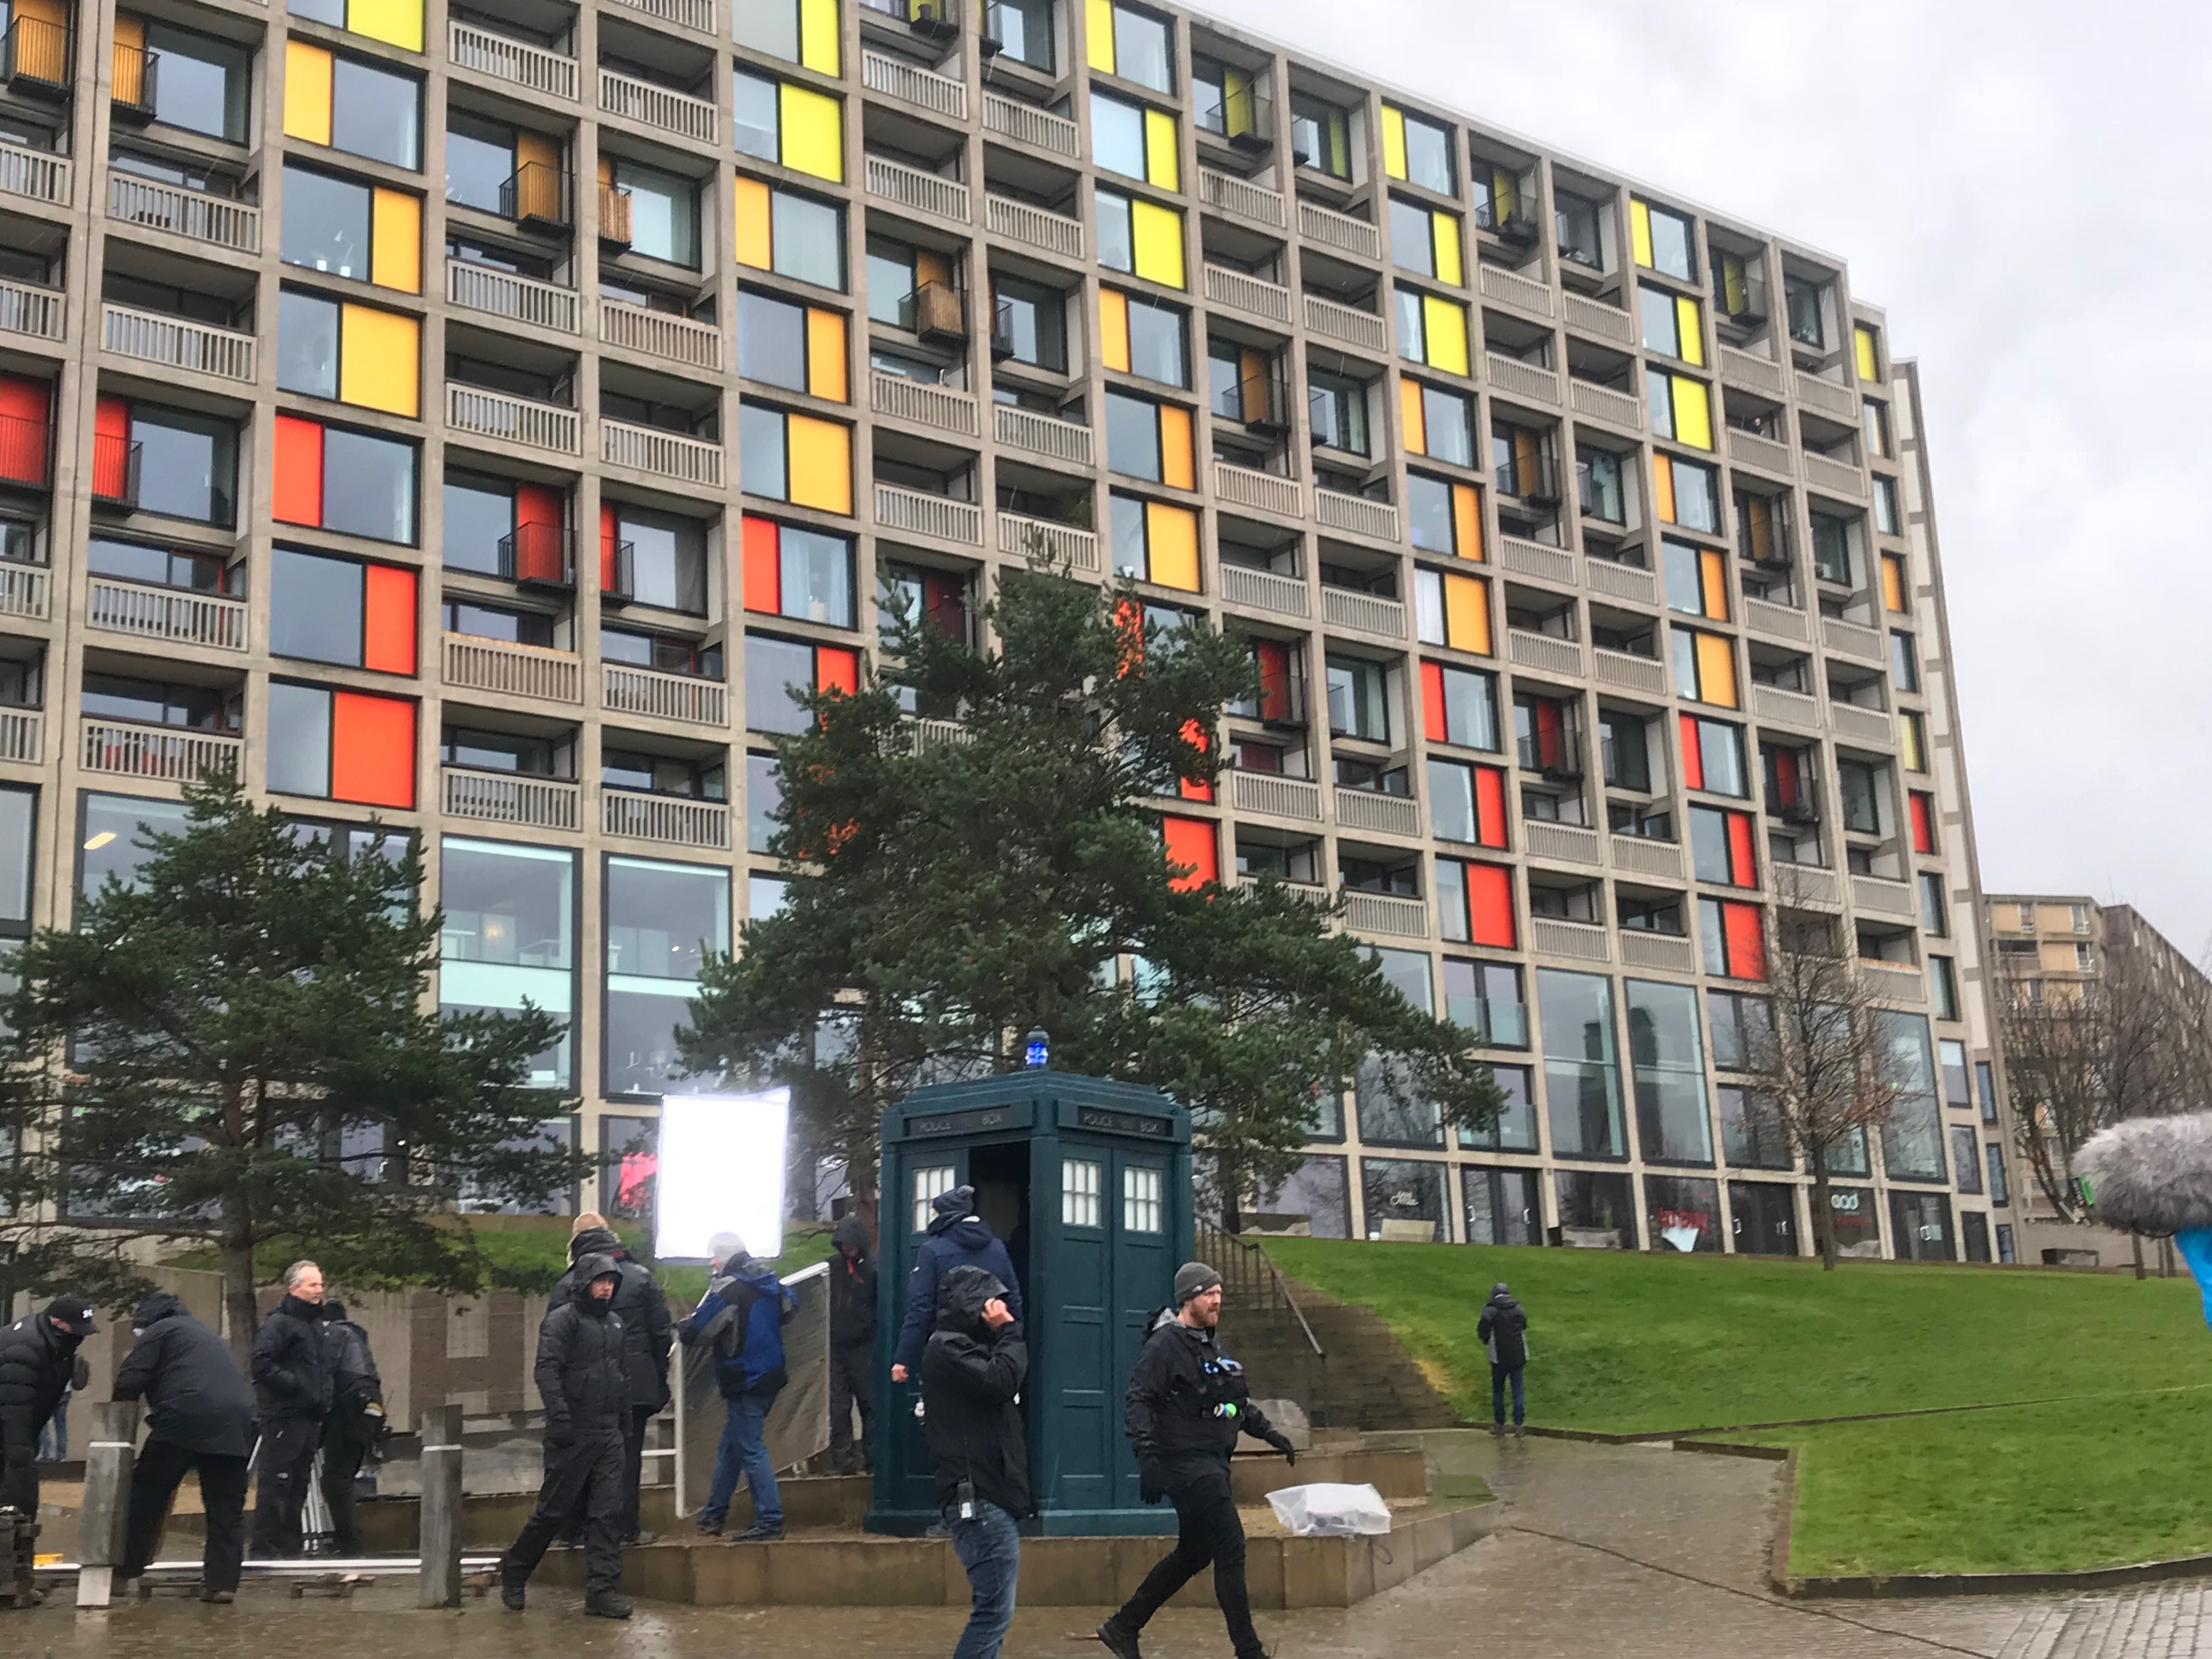 doctor-who-filming-sheffield-2018_25375782427_o